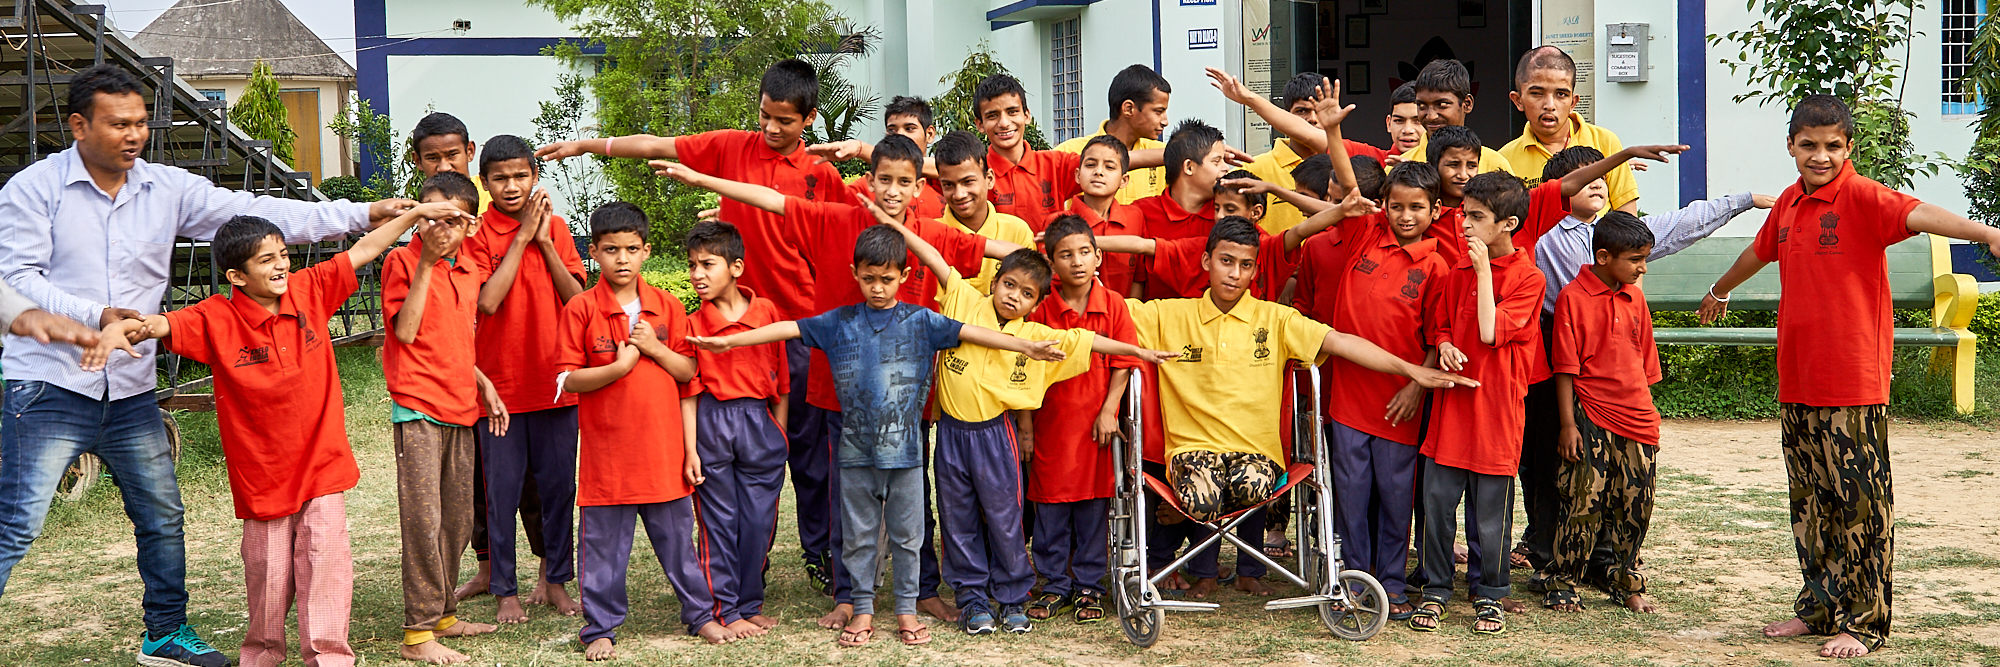 Funding Schools, Children's Homes and Skills Centres  For destitute children, women and those with Special Needs in remote parts of India